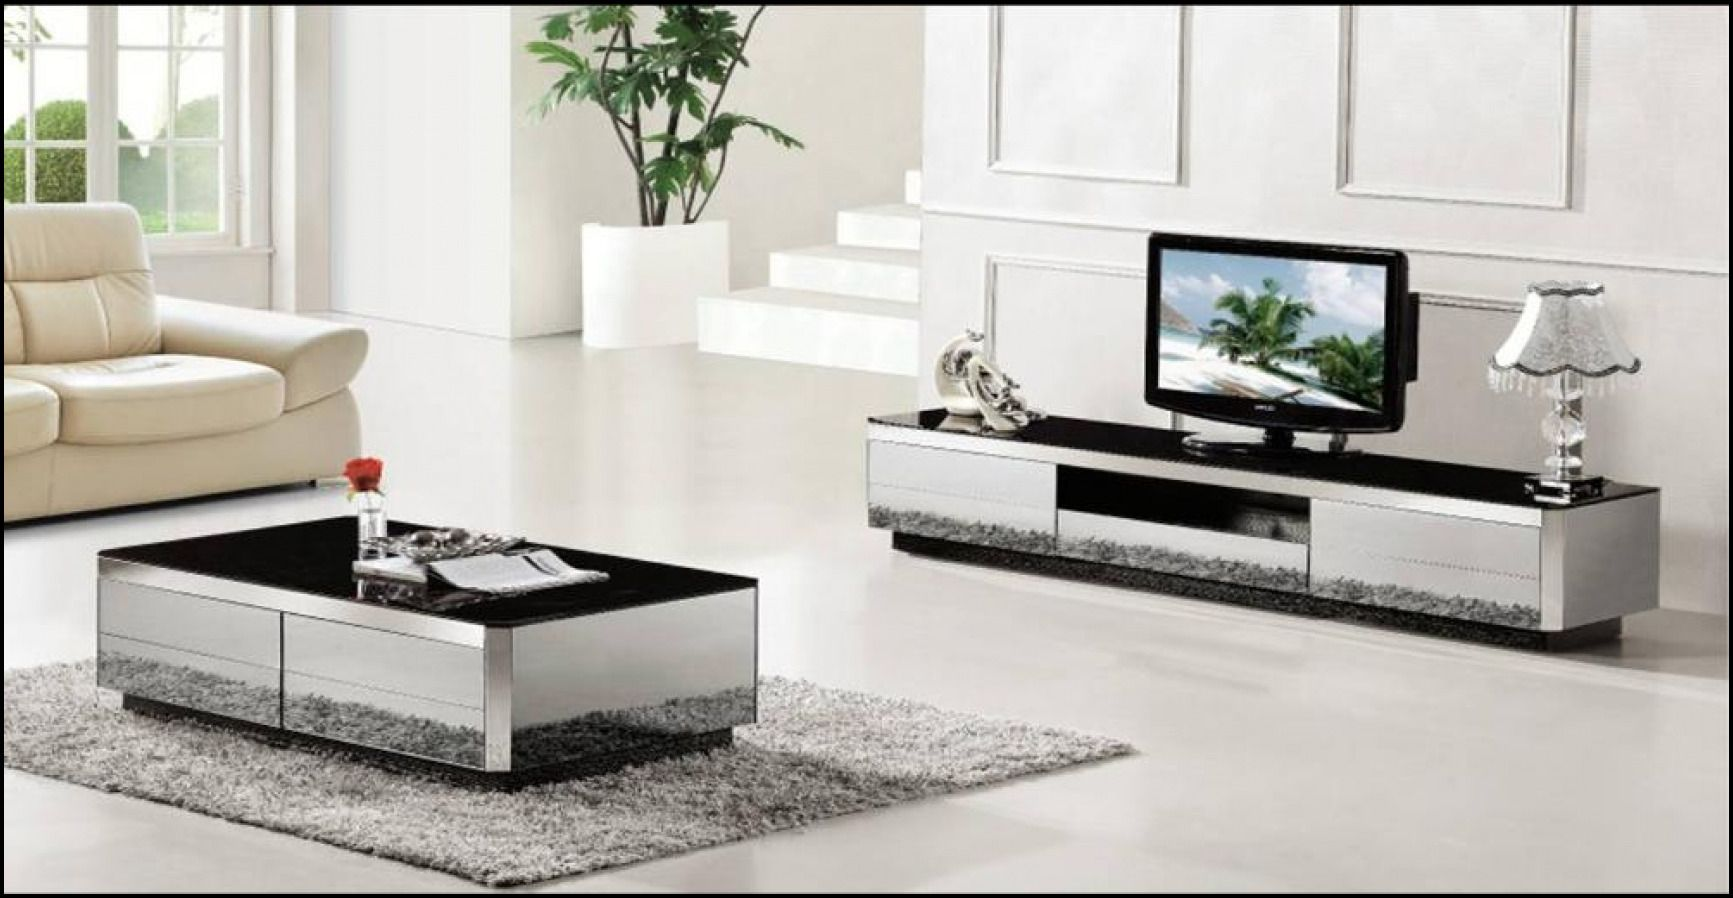 Tv Stand And Coffee Table Set Black Tv Stand And Coffee Table Set